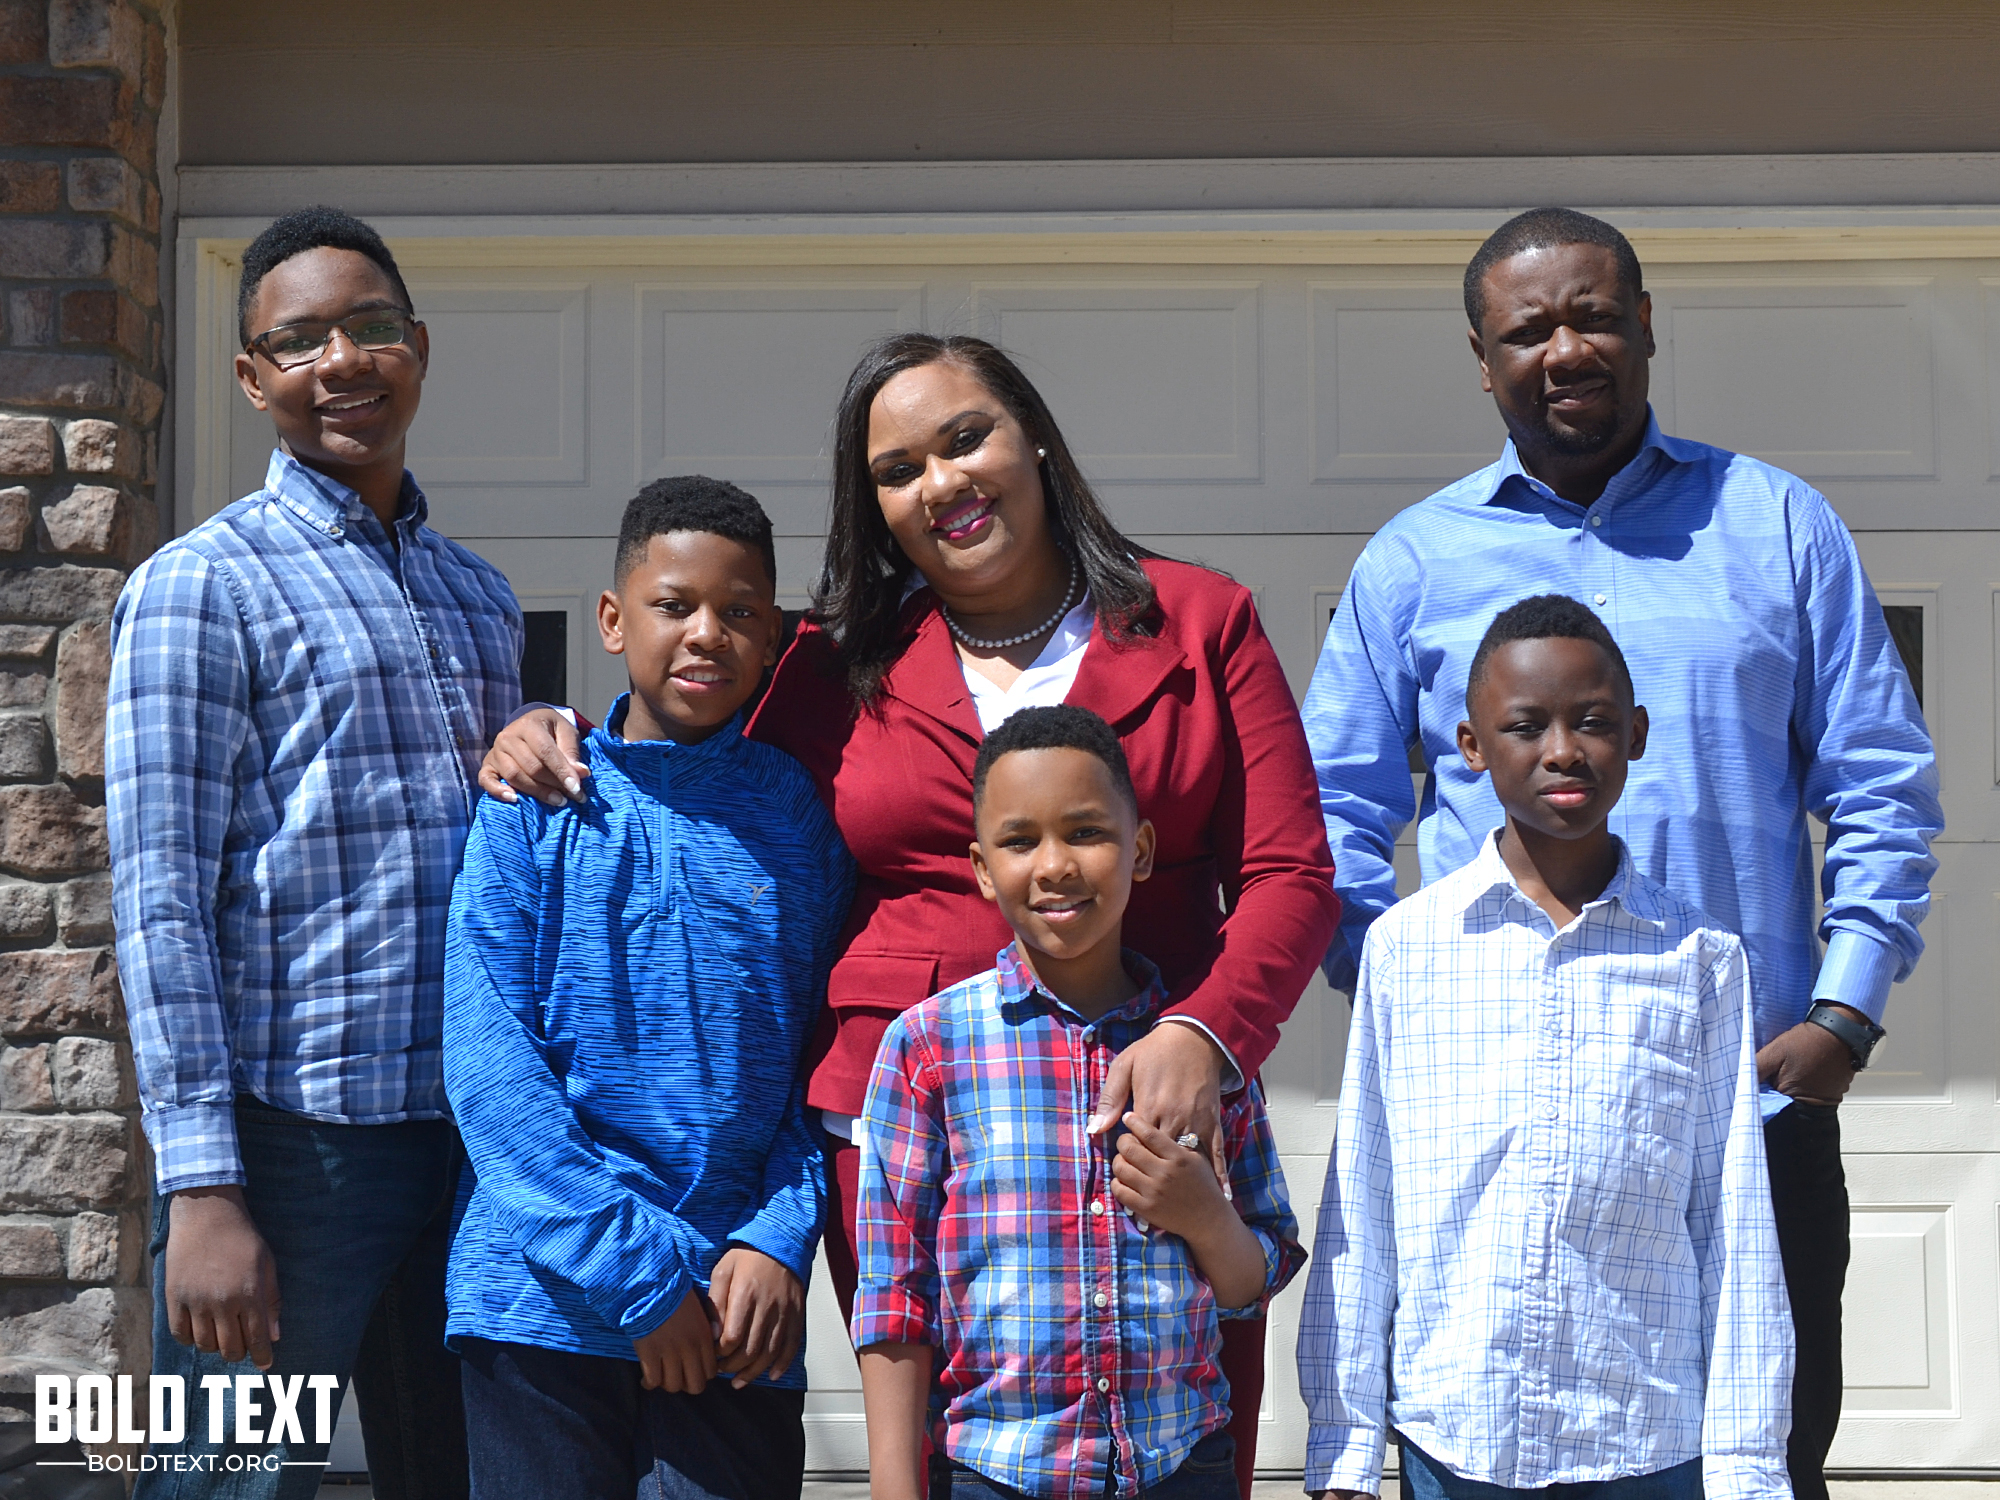 Danielle Kombo, candidate, Colorado House District 45 and family.